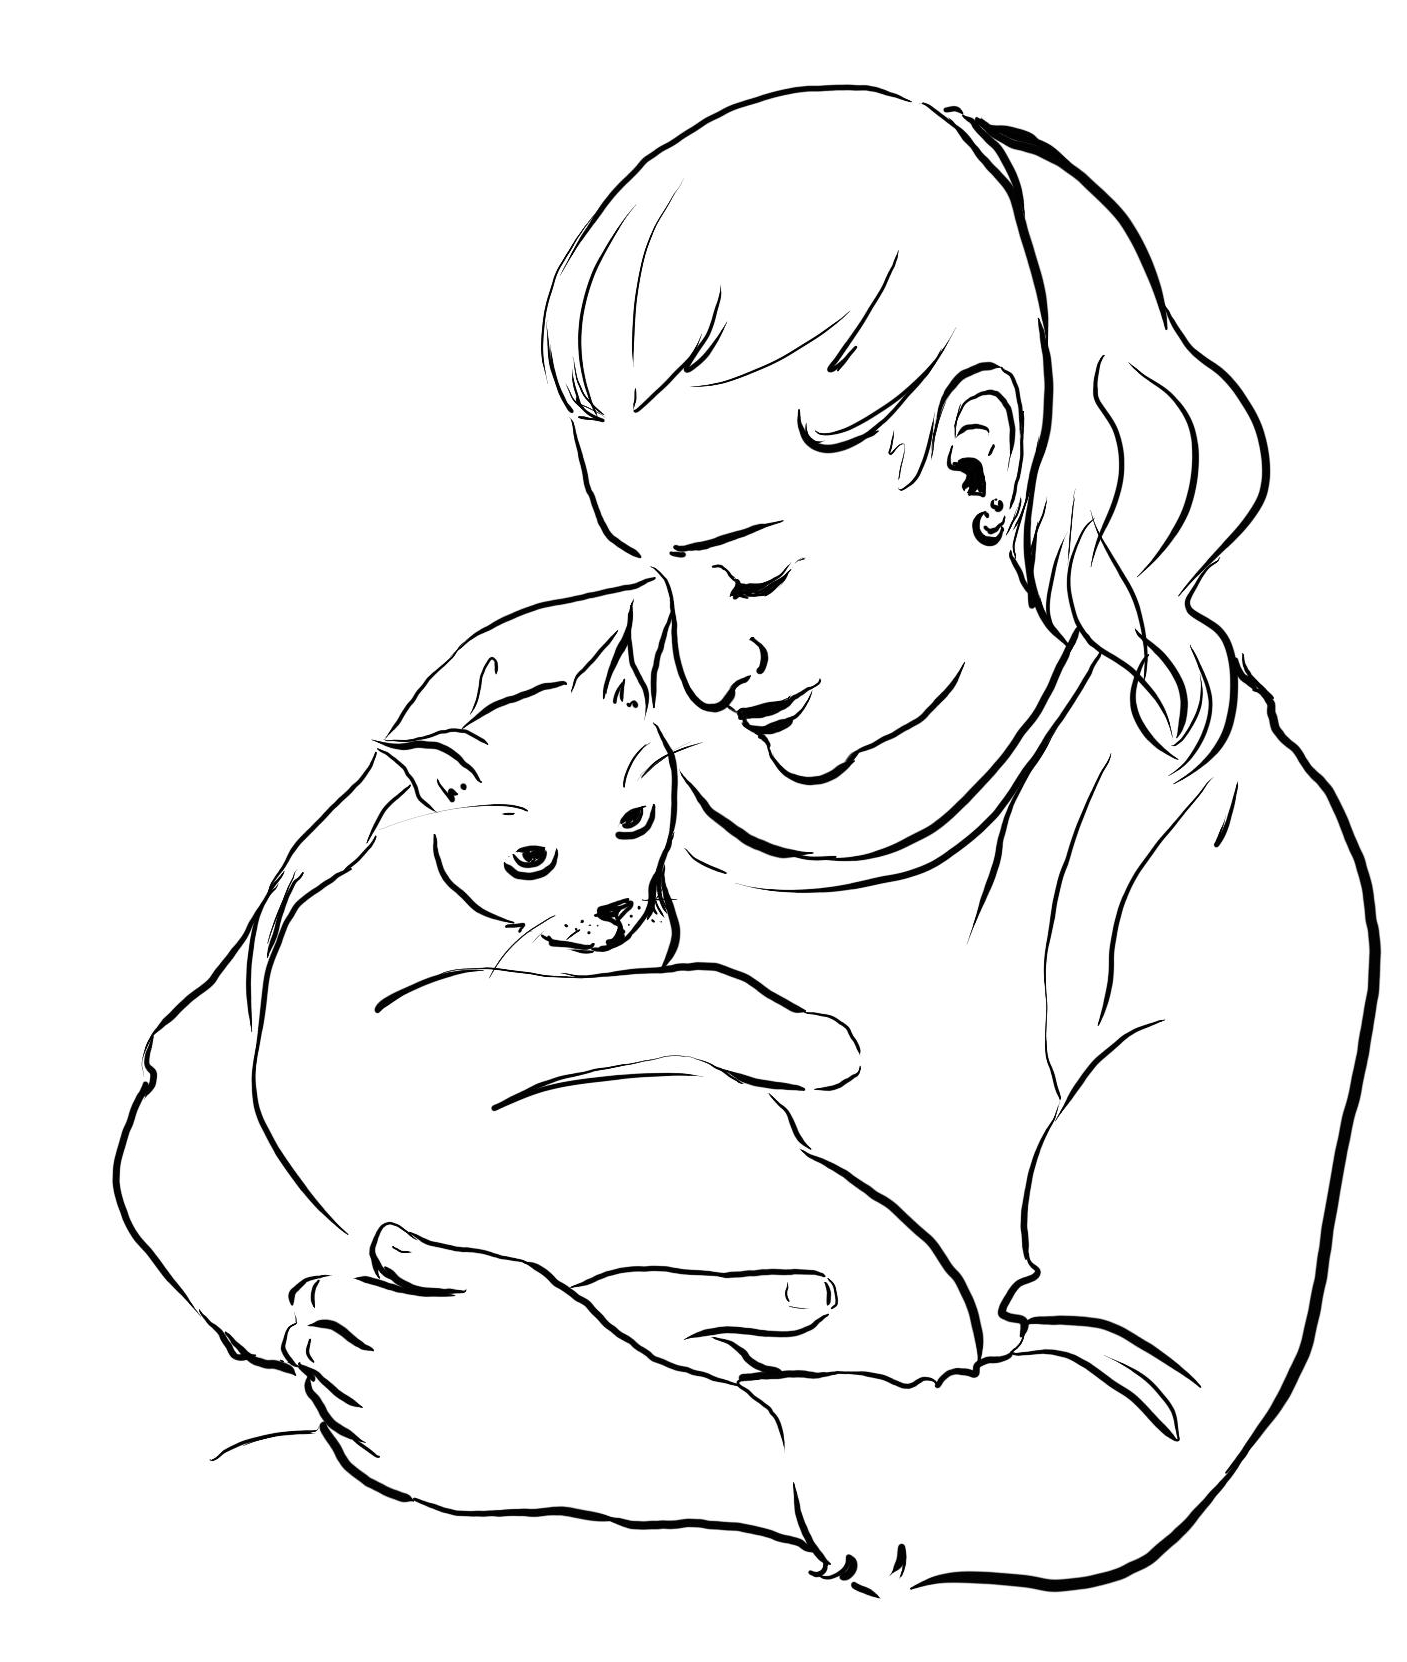 Line drawing of a young woman holding a cat